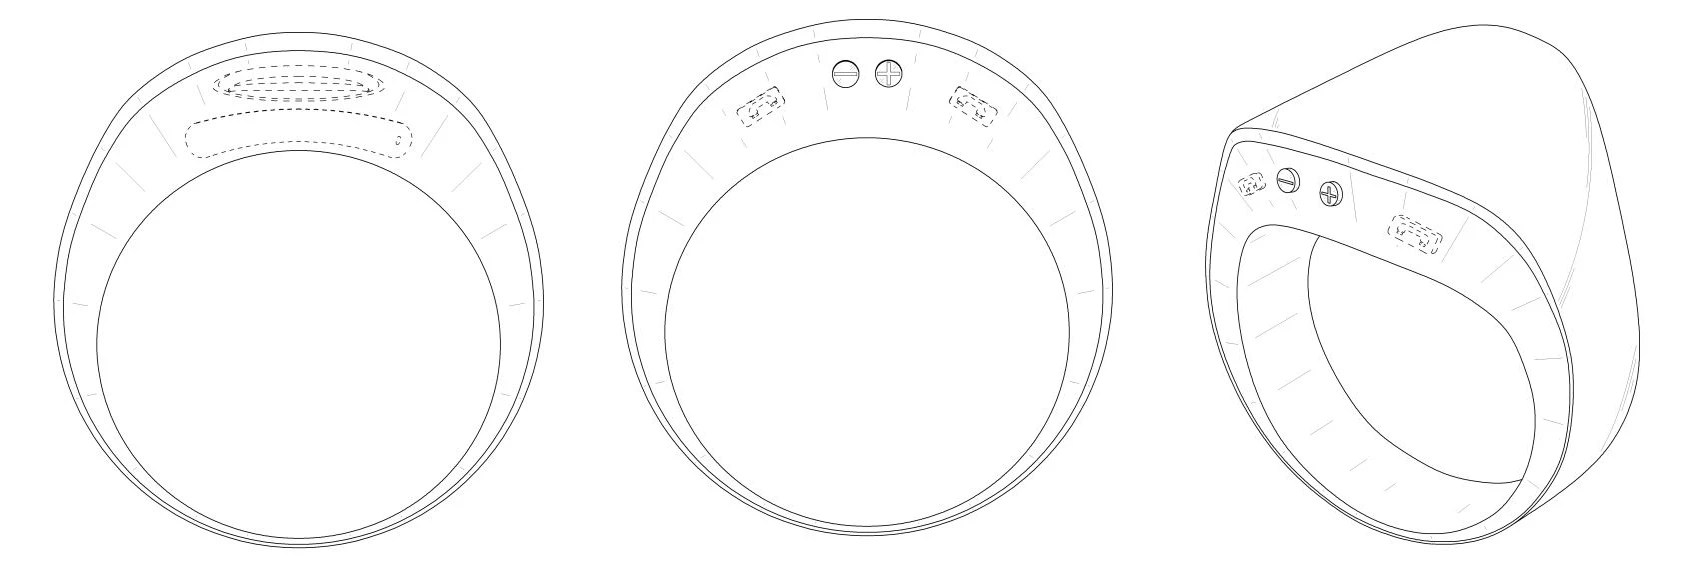 Patent sketches show Samsung is developing a smart ring